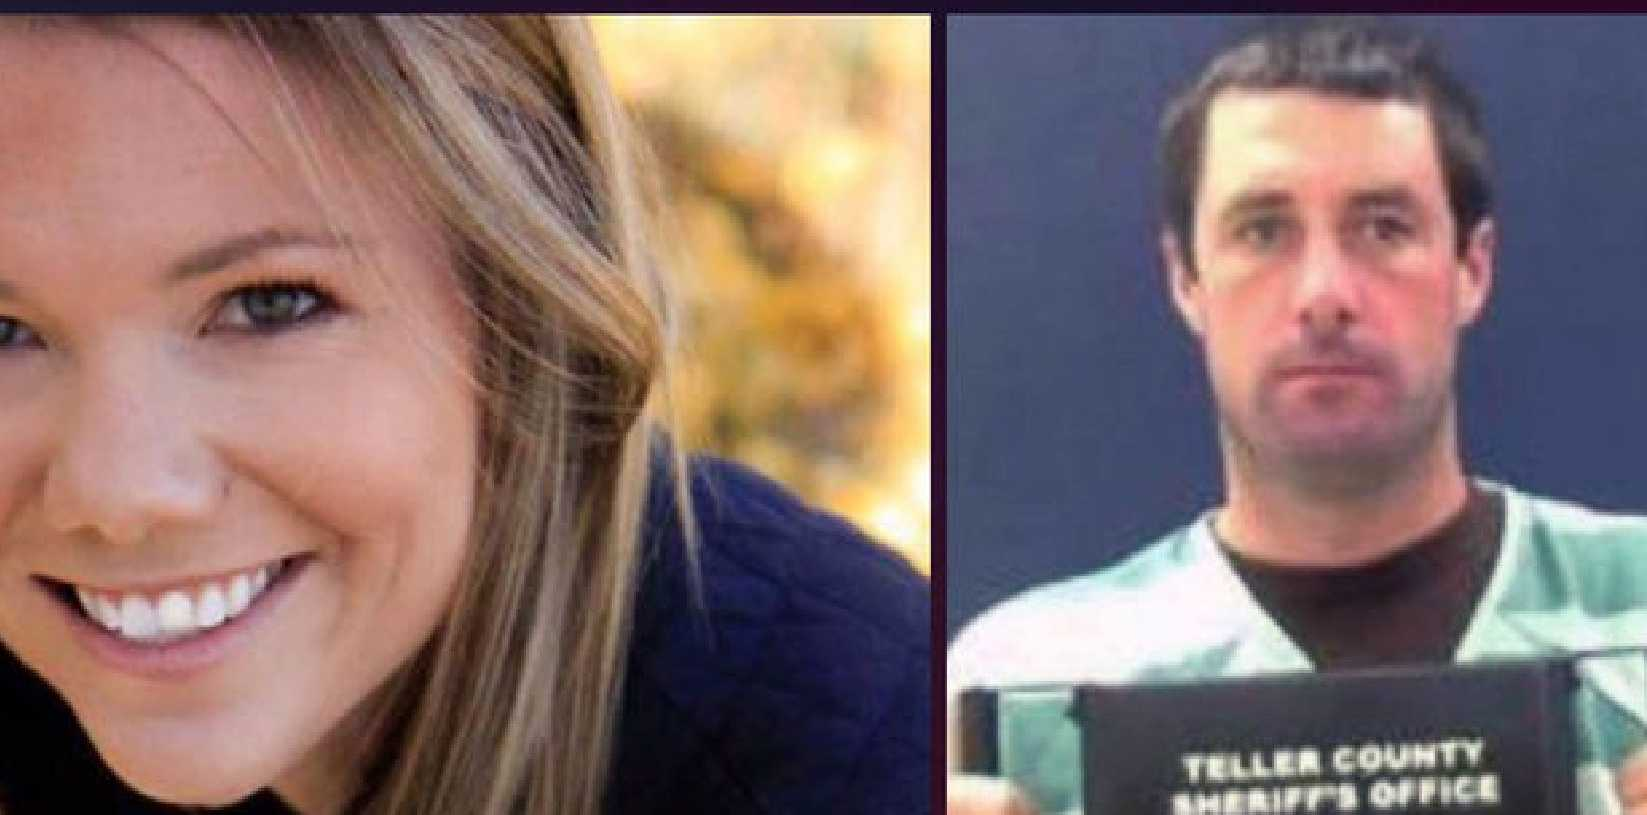 Police are still searching for the body of pilot and new mum Kelsey Berreth (left). Her fiance Patrick Frazee (right) has been charged with her murder. Picture: Supplied